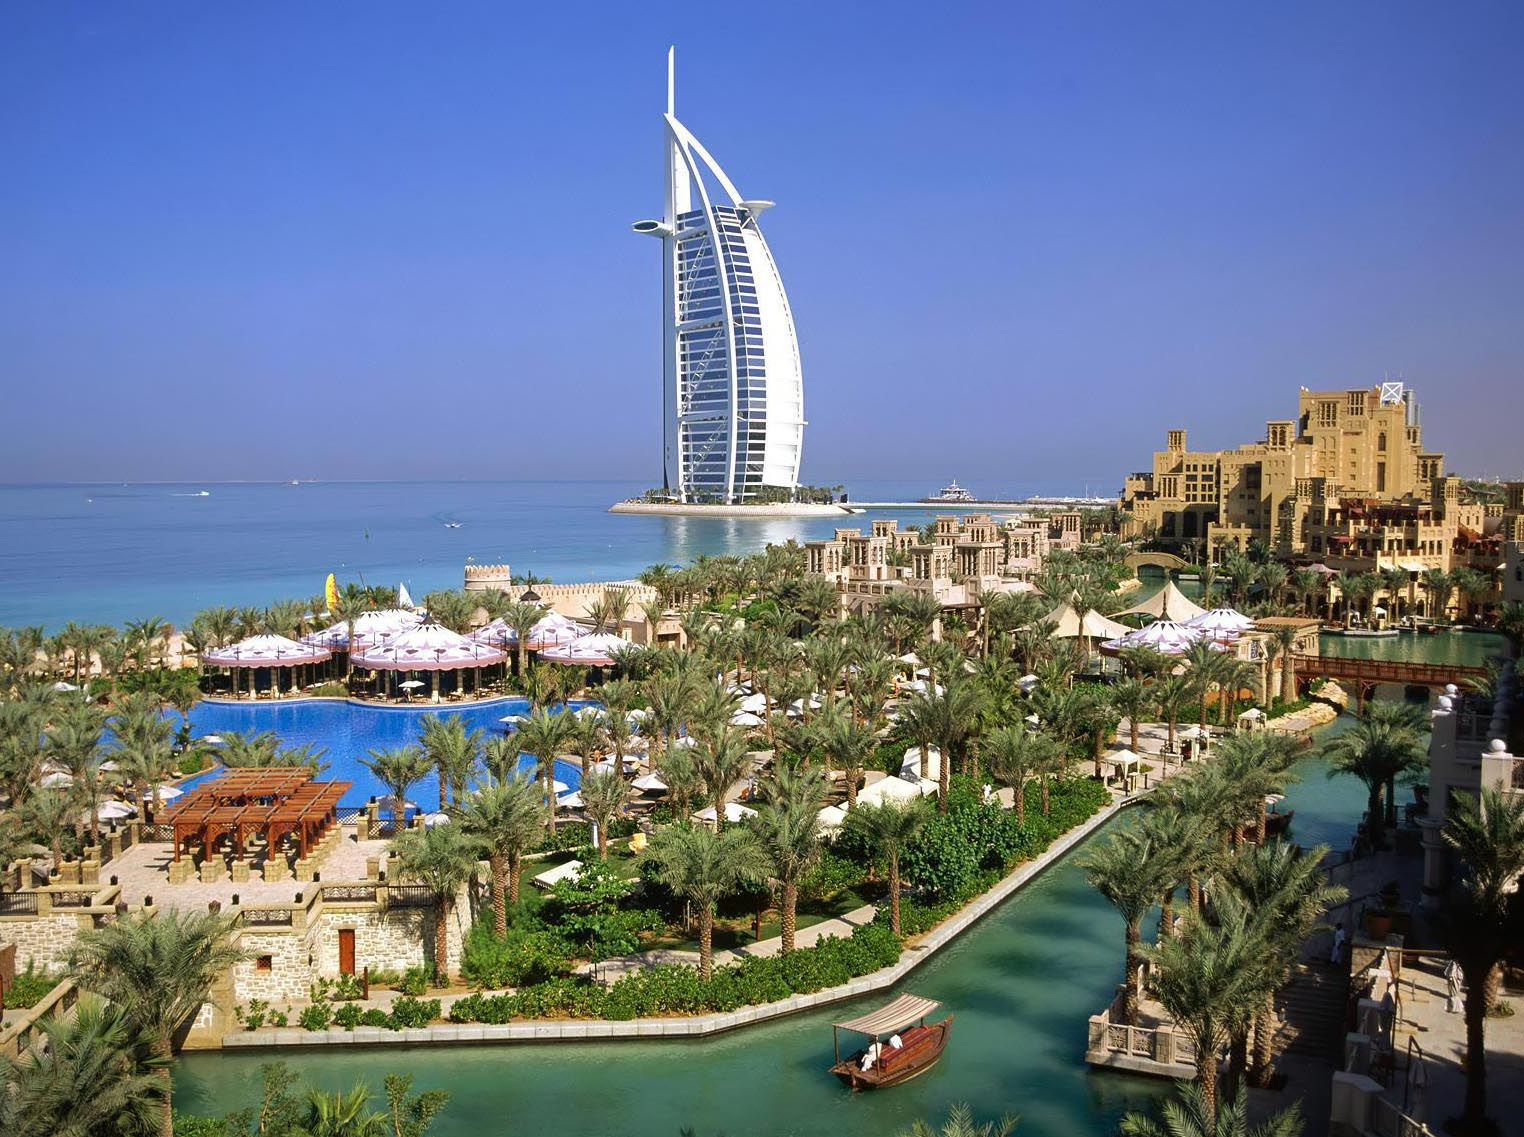 Accomadation in the world burj al arab hotel in dubai for Dubai burj al arab